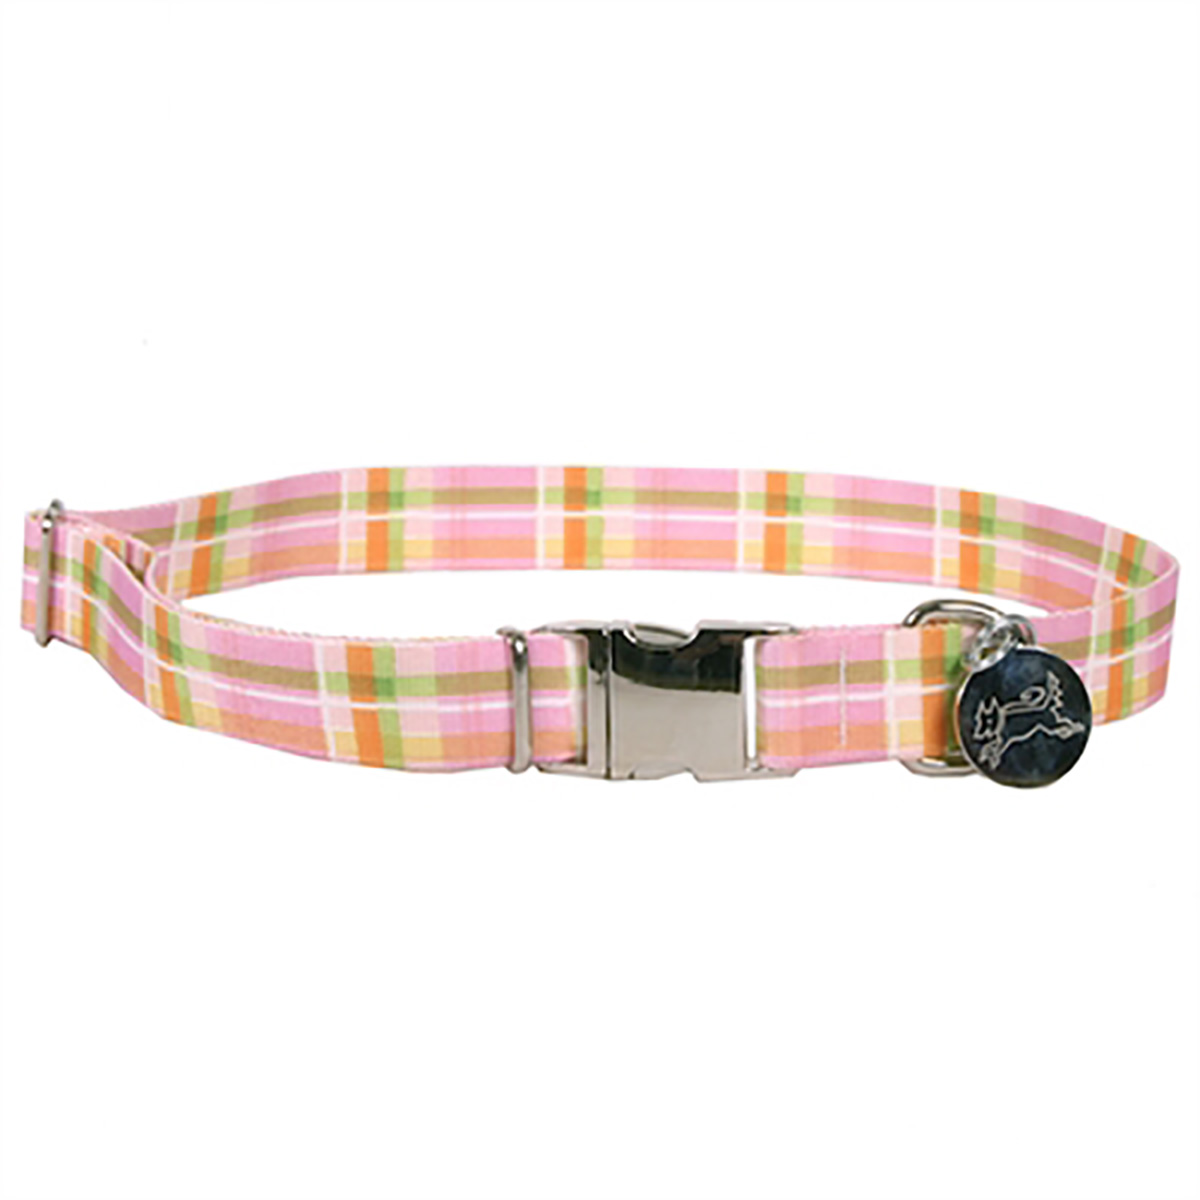 Southern Dawg Madras Dog Collar by Yellow Dog - Pink